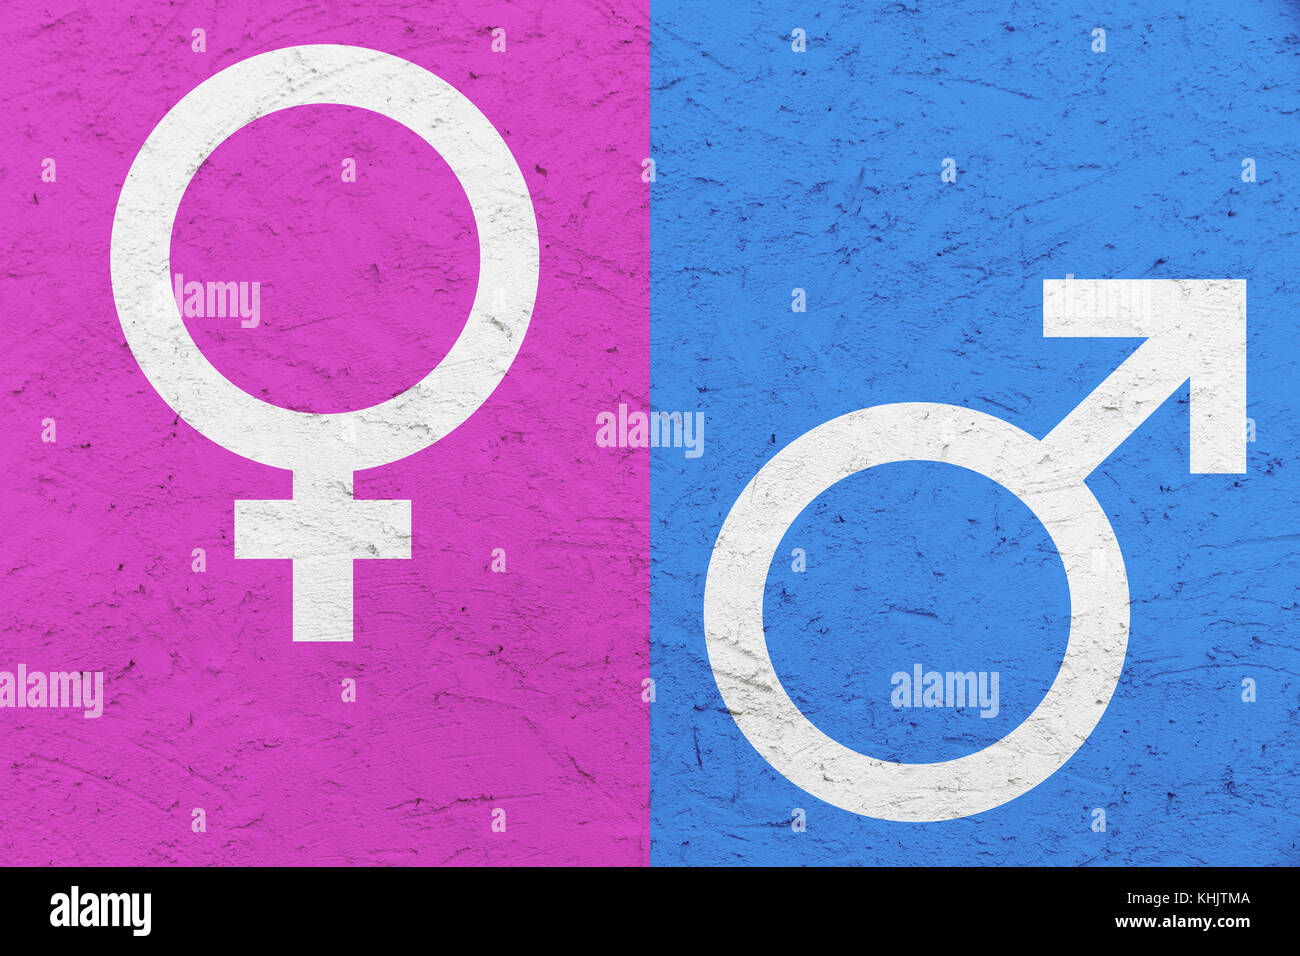 Male And Female Gender Symbols Mars And Venus Signs Over Pink And